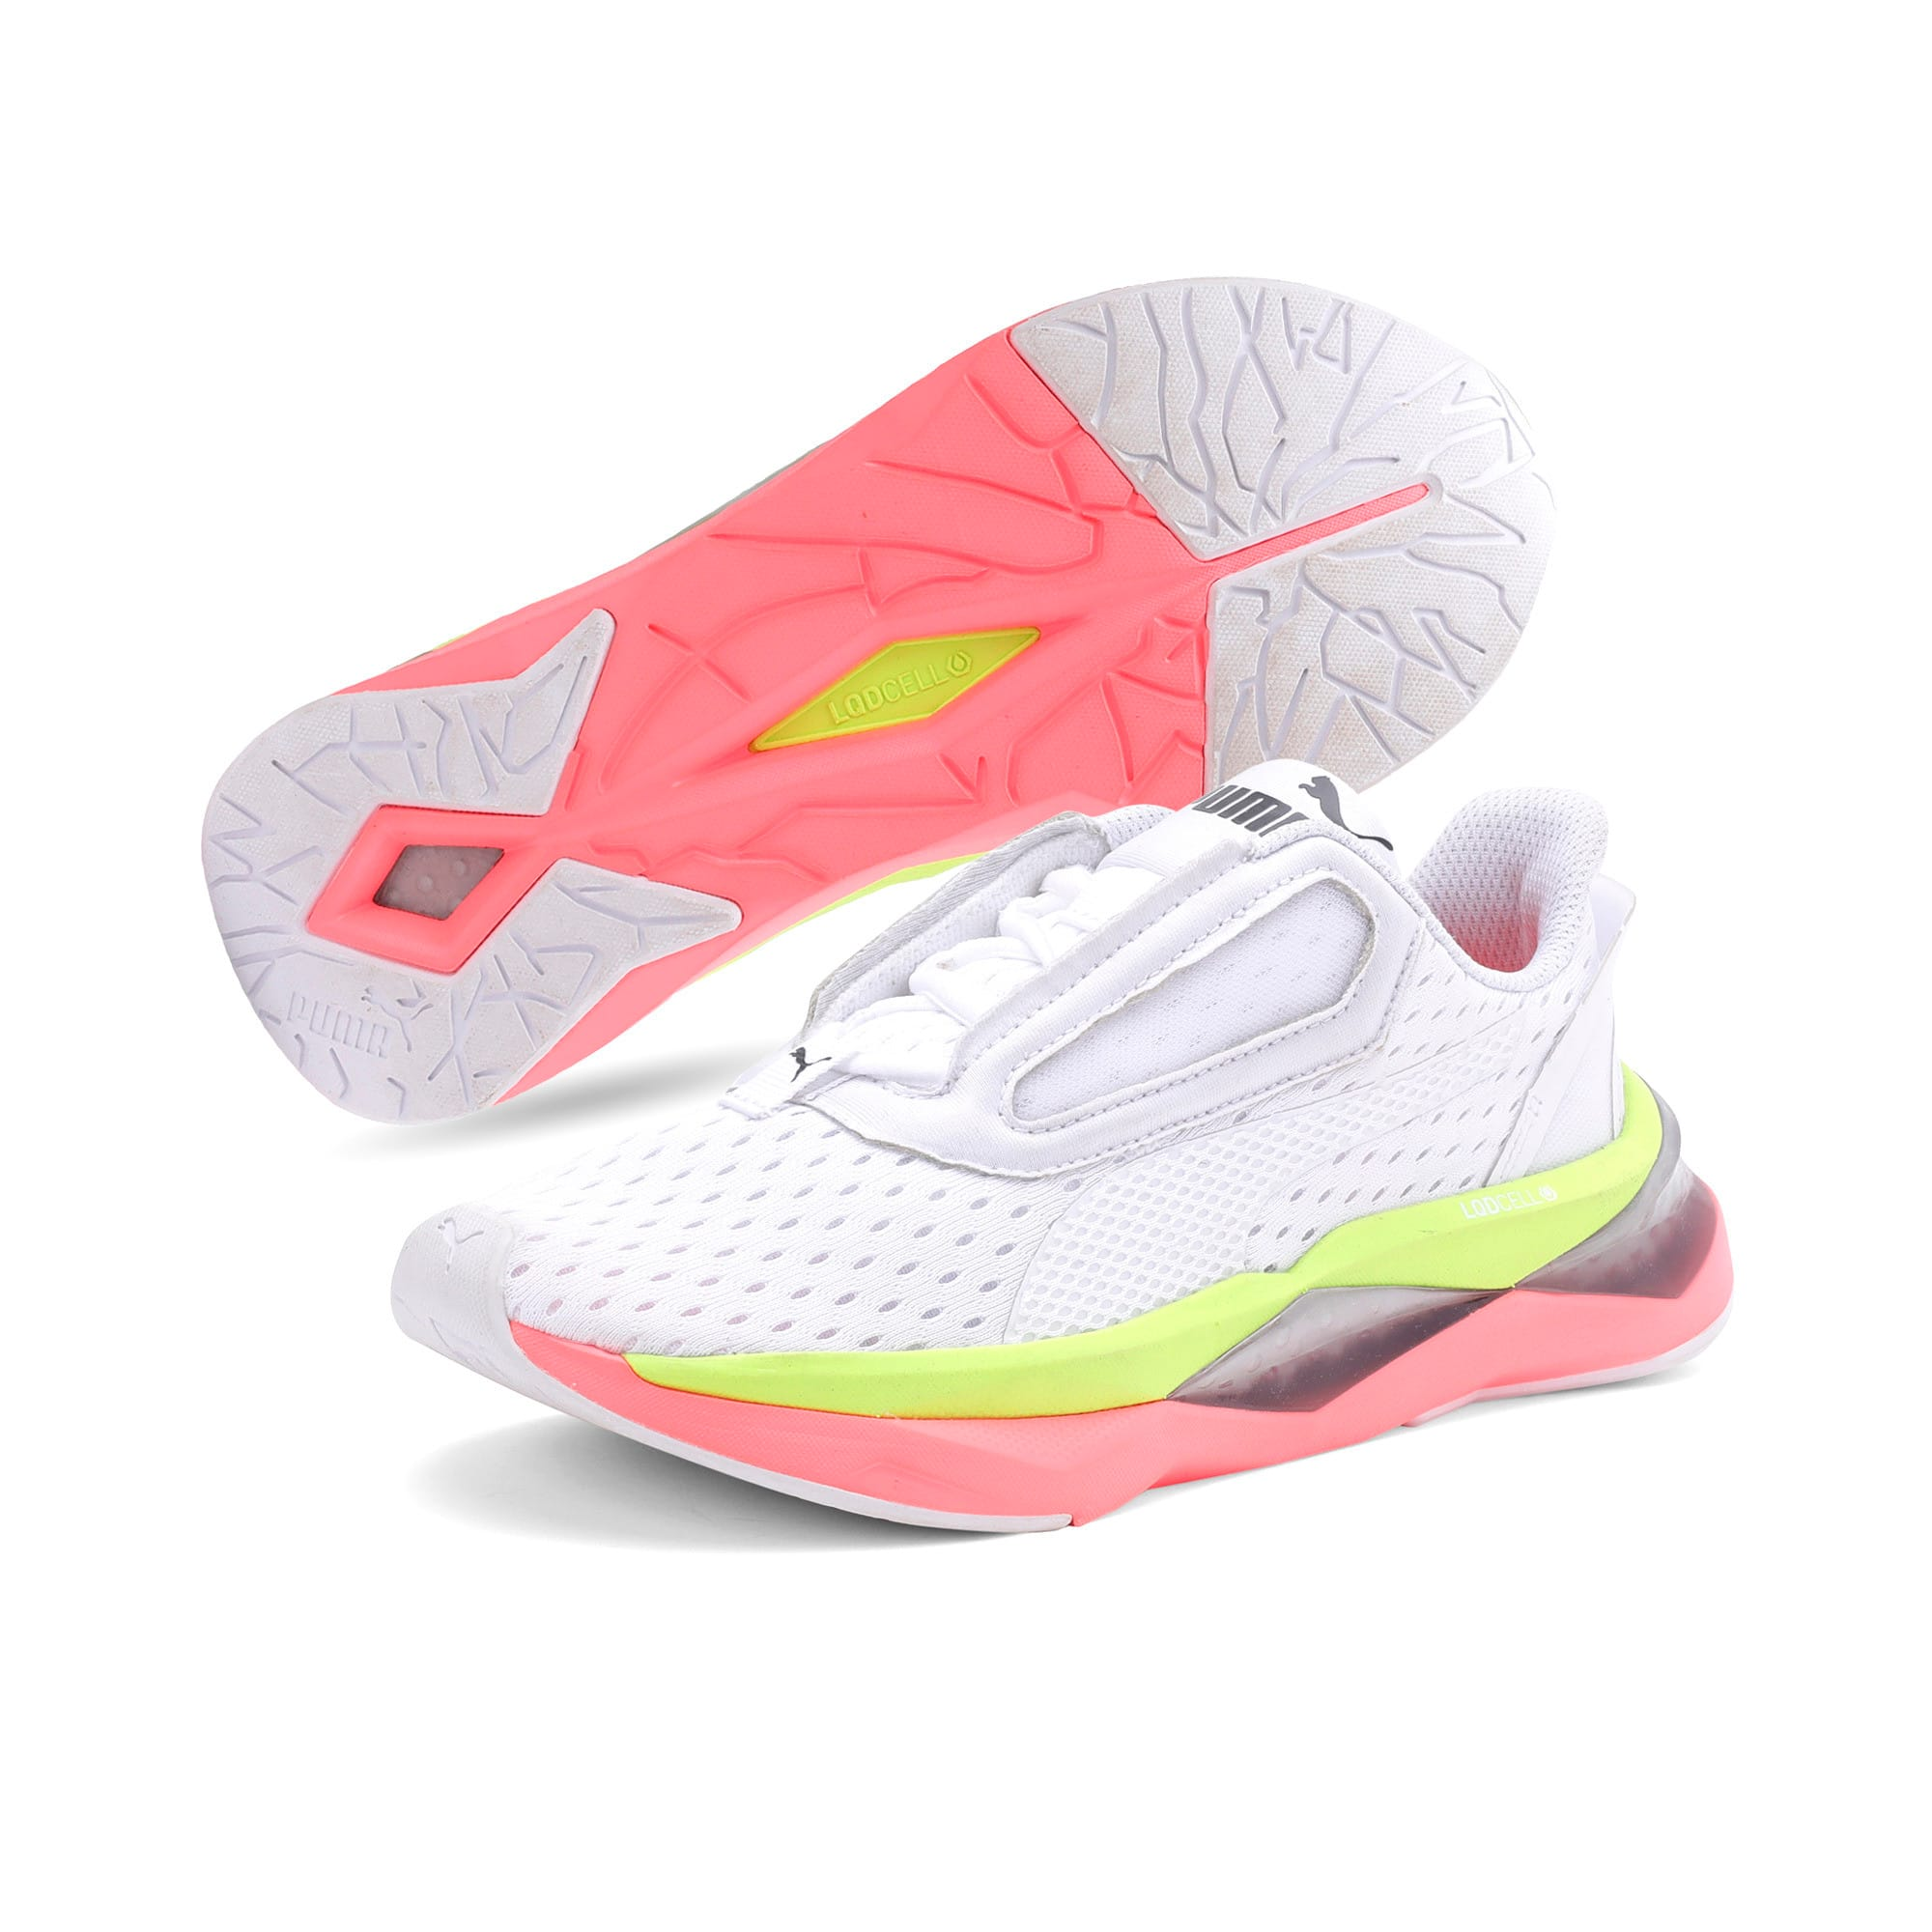 Thumbnail 4 of LQDCell Shatter XT Women's Training Shoes, Puma White-Pink Alert, medium-IND